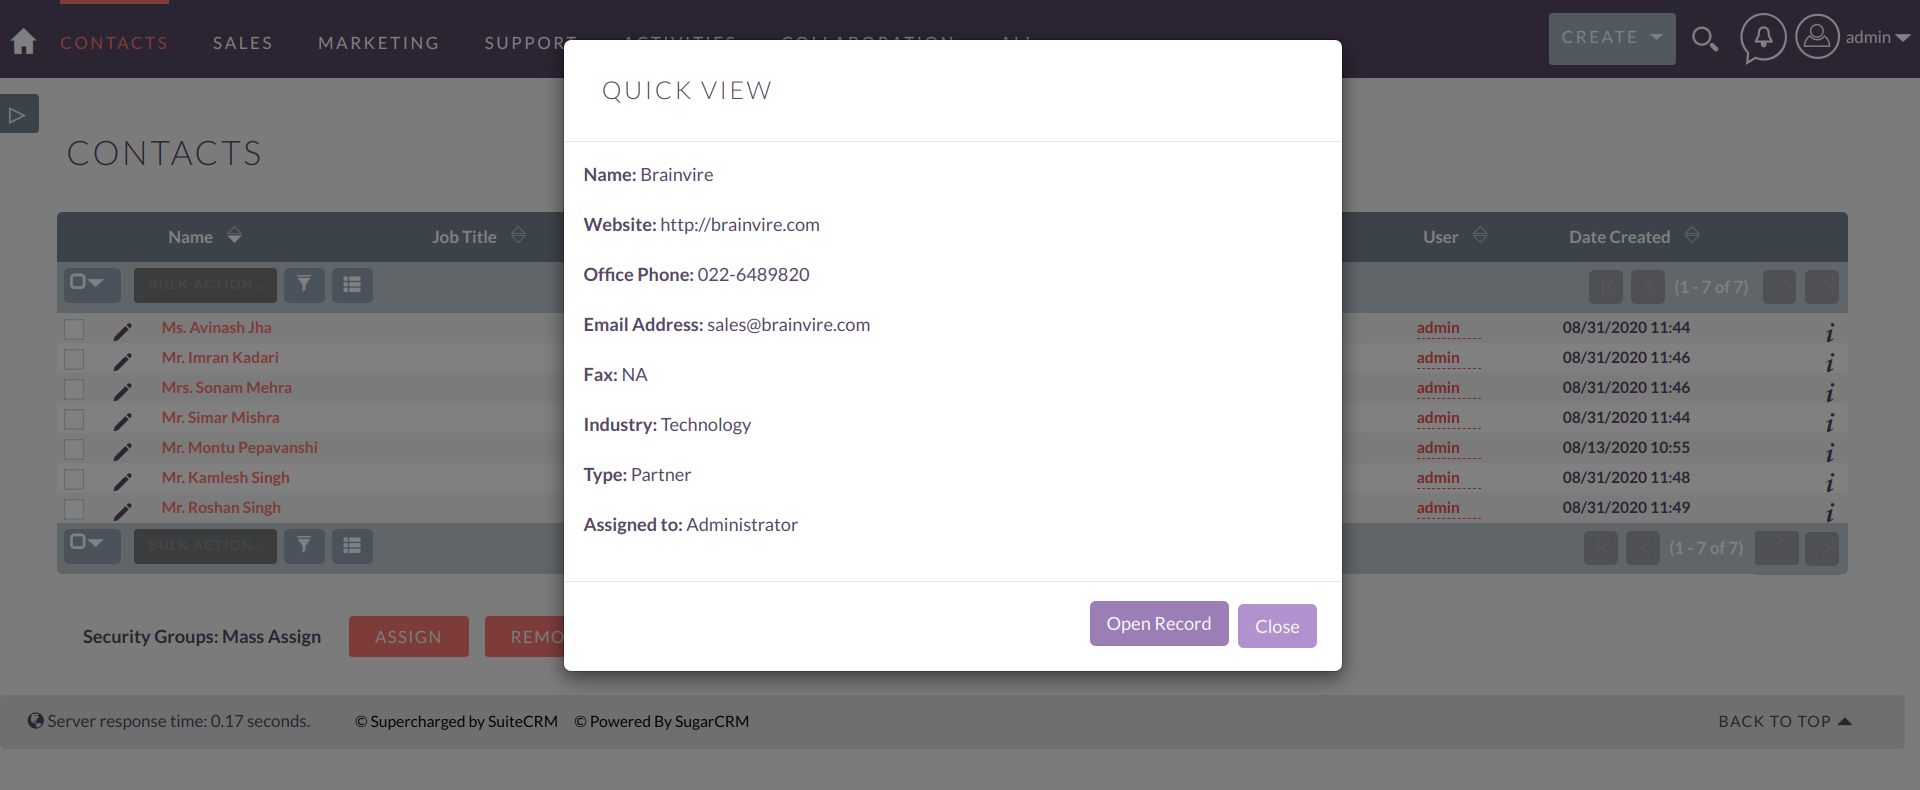 Relate Quickview add-on for SuiteCRM List View